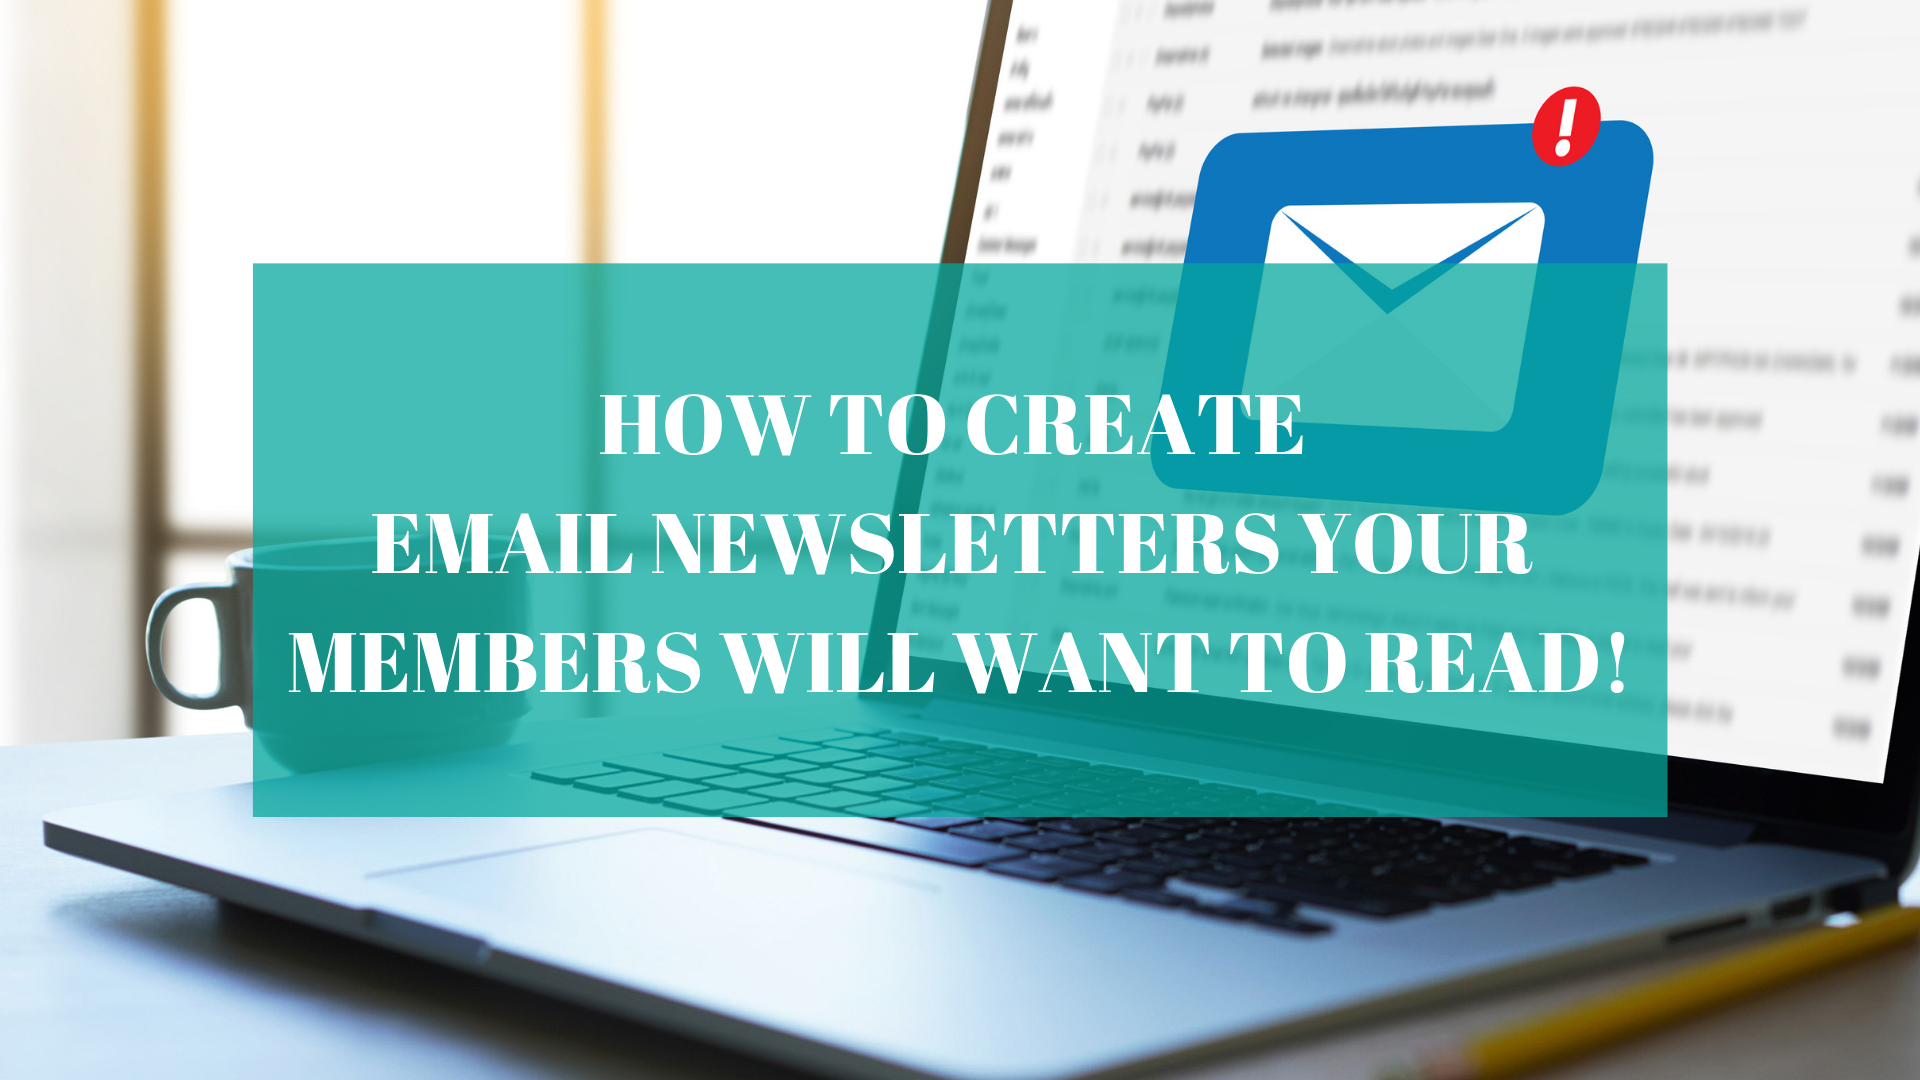 How to Create Email Newsletters Your Members Will Want to Read